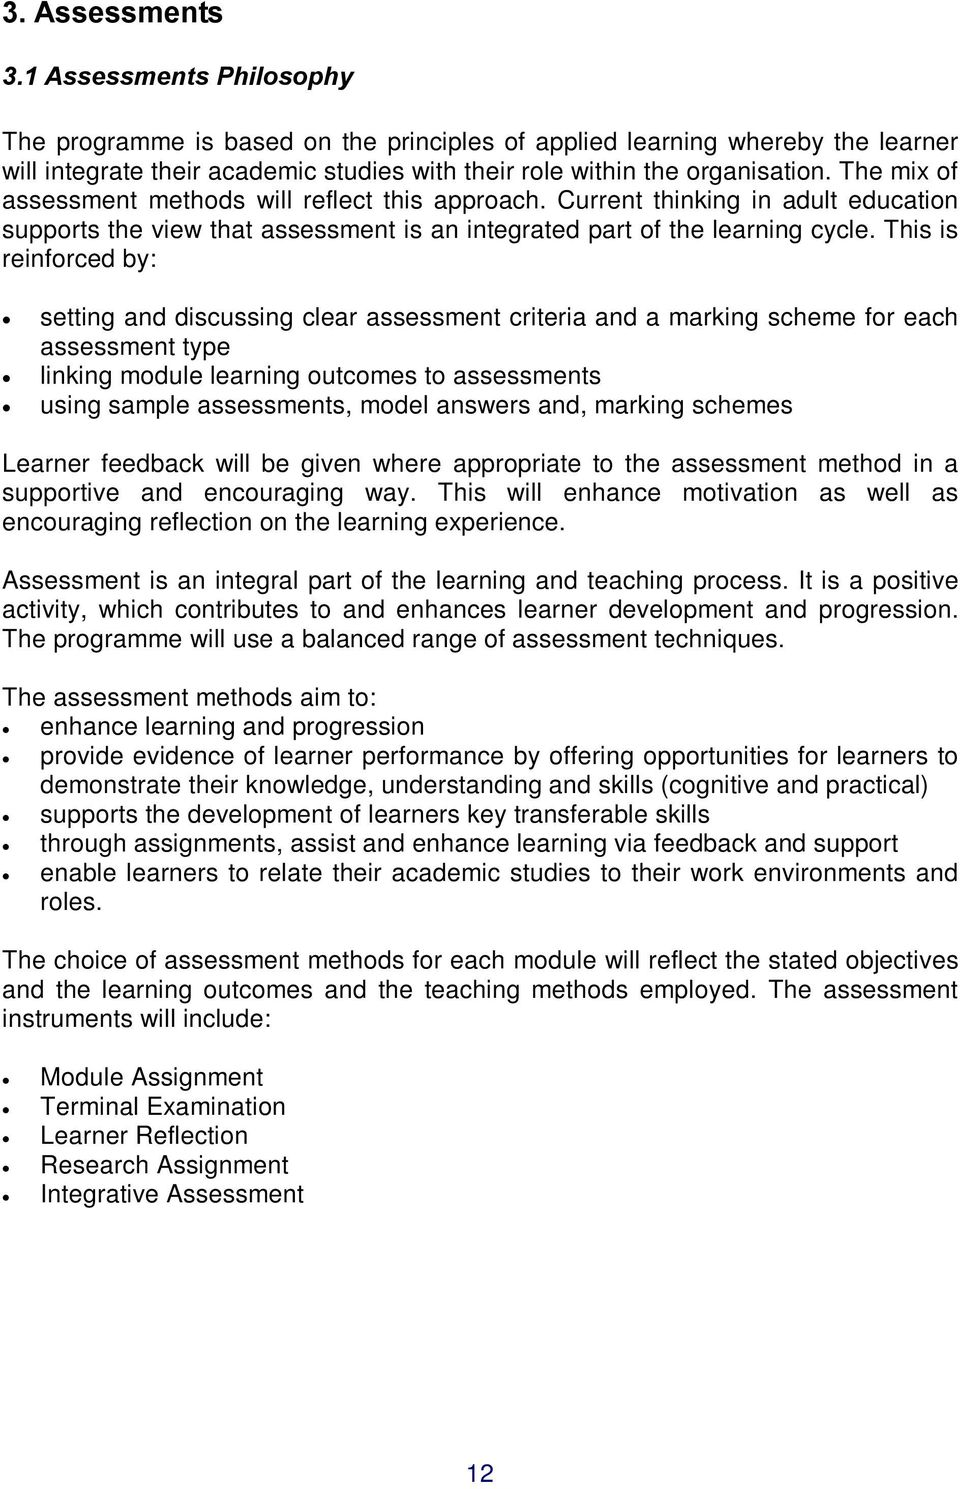 The mix of assessment methods will reflect this approach. Current thinking in adult education supports the view that assessment is an integrated part of the learning cycle.